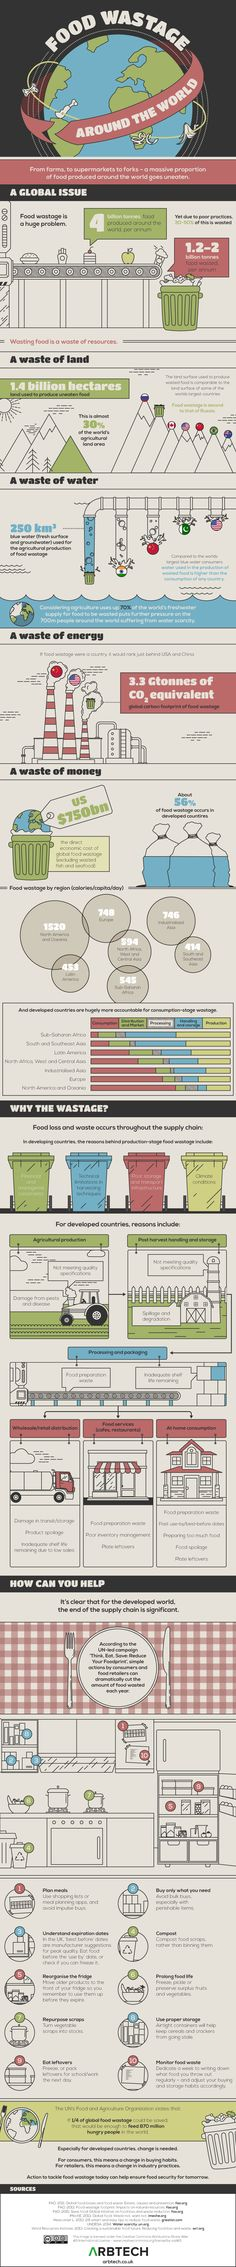 Food Wastage Around The World #infographic #Food #FoodWastage